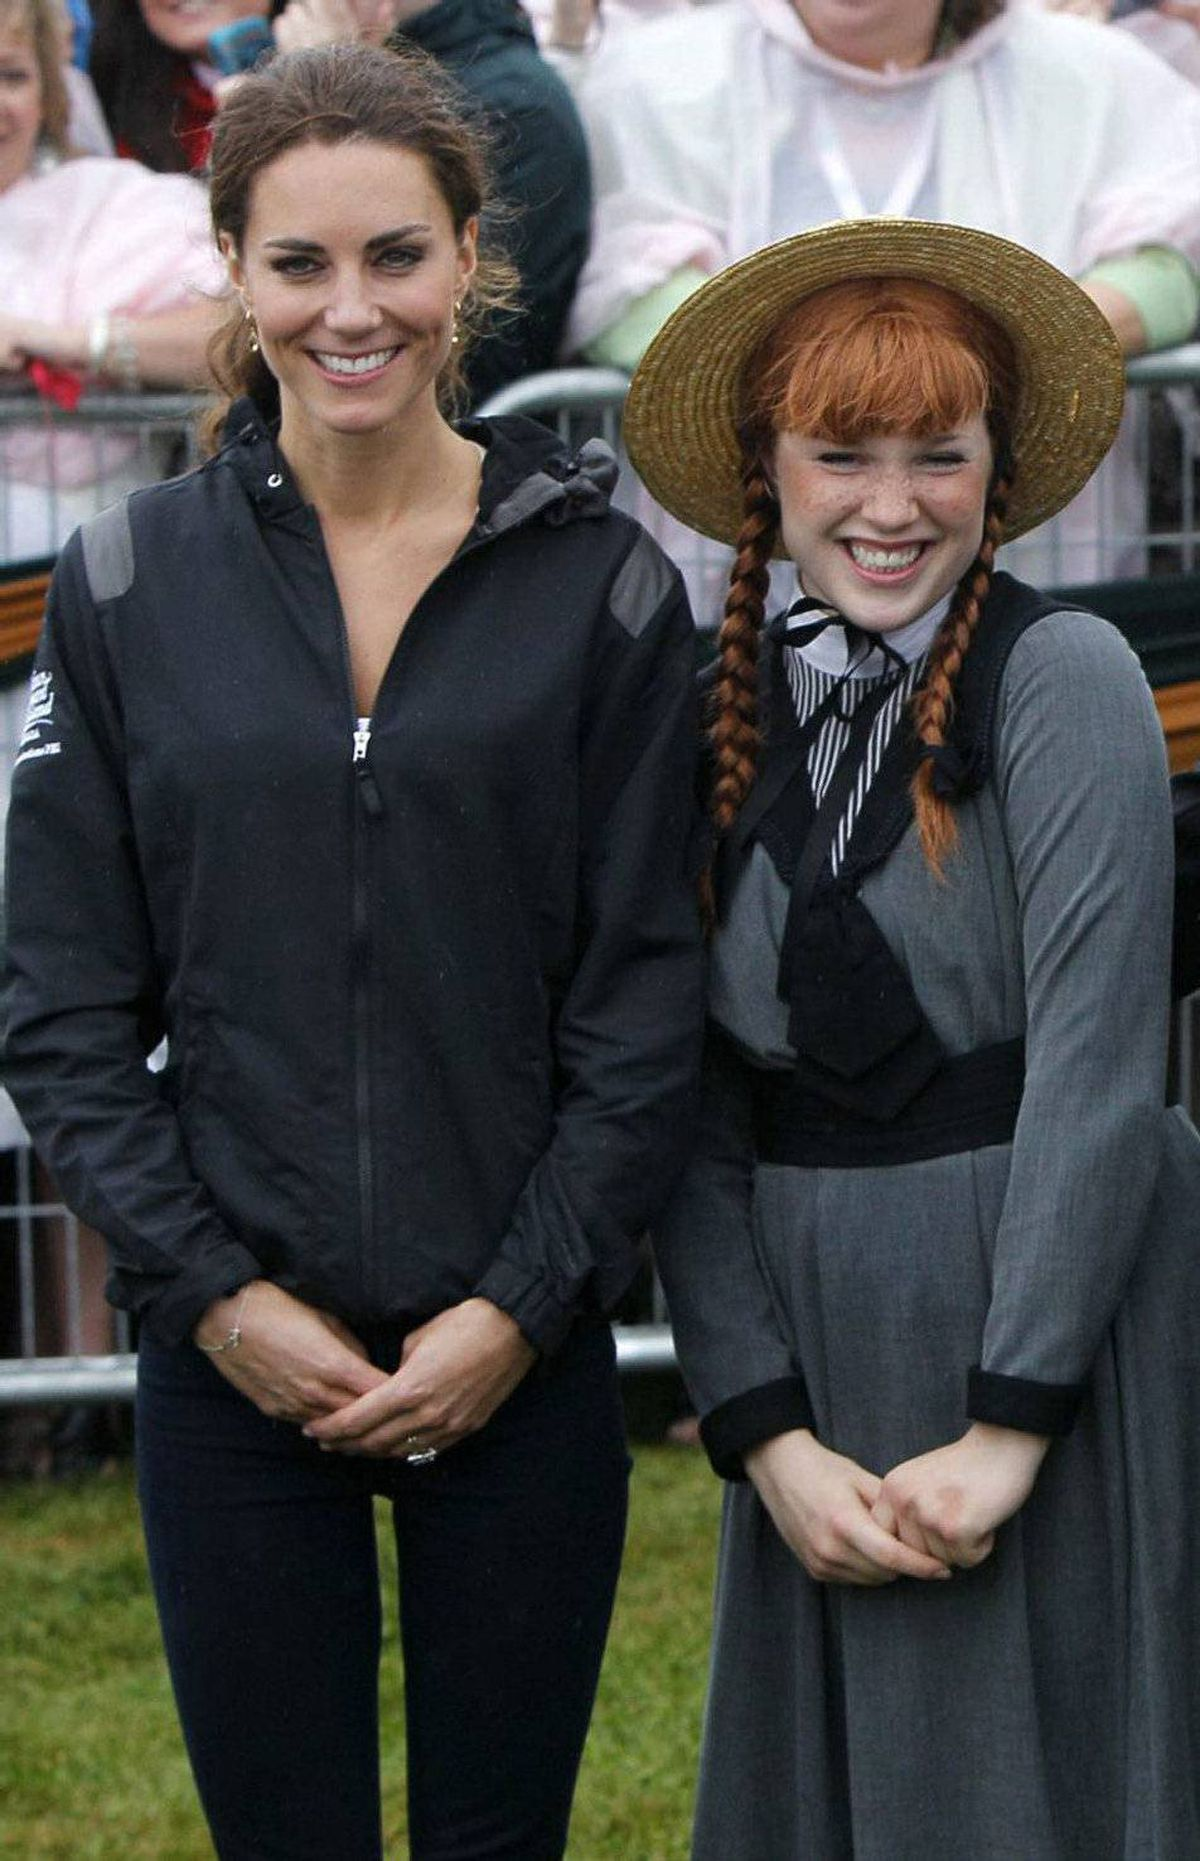 During their royal visit, Will and Kate got a full rundown of every Canadian cultural stereotype, starting with Anne of Green Gables.